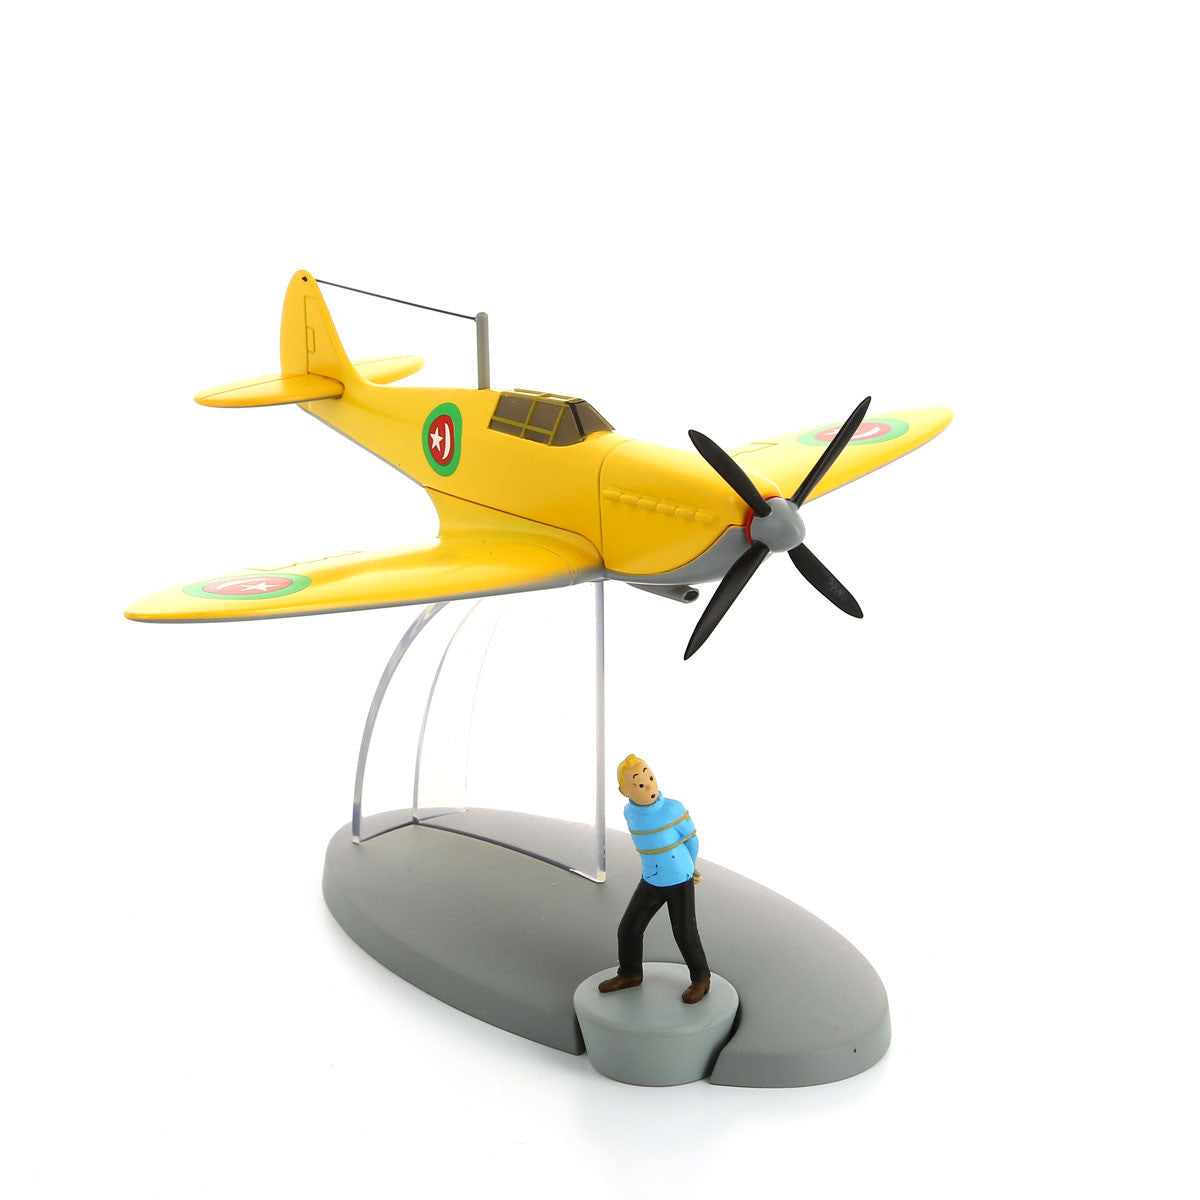 AIRCRAFT TINTIN: Emir Yellow Plane #29